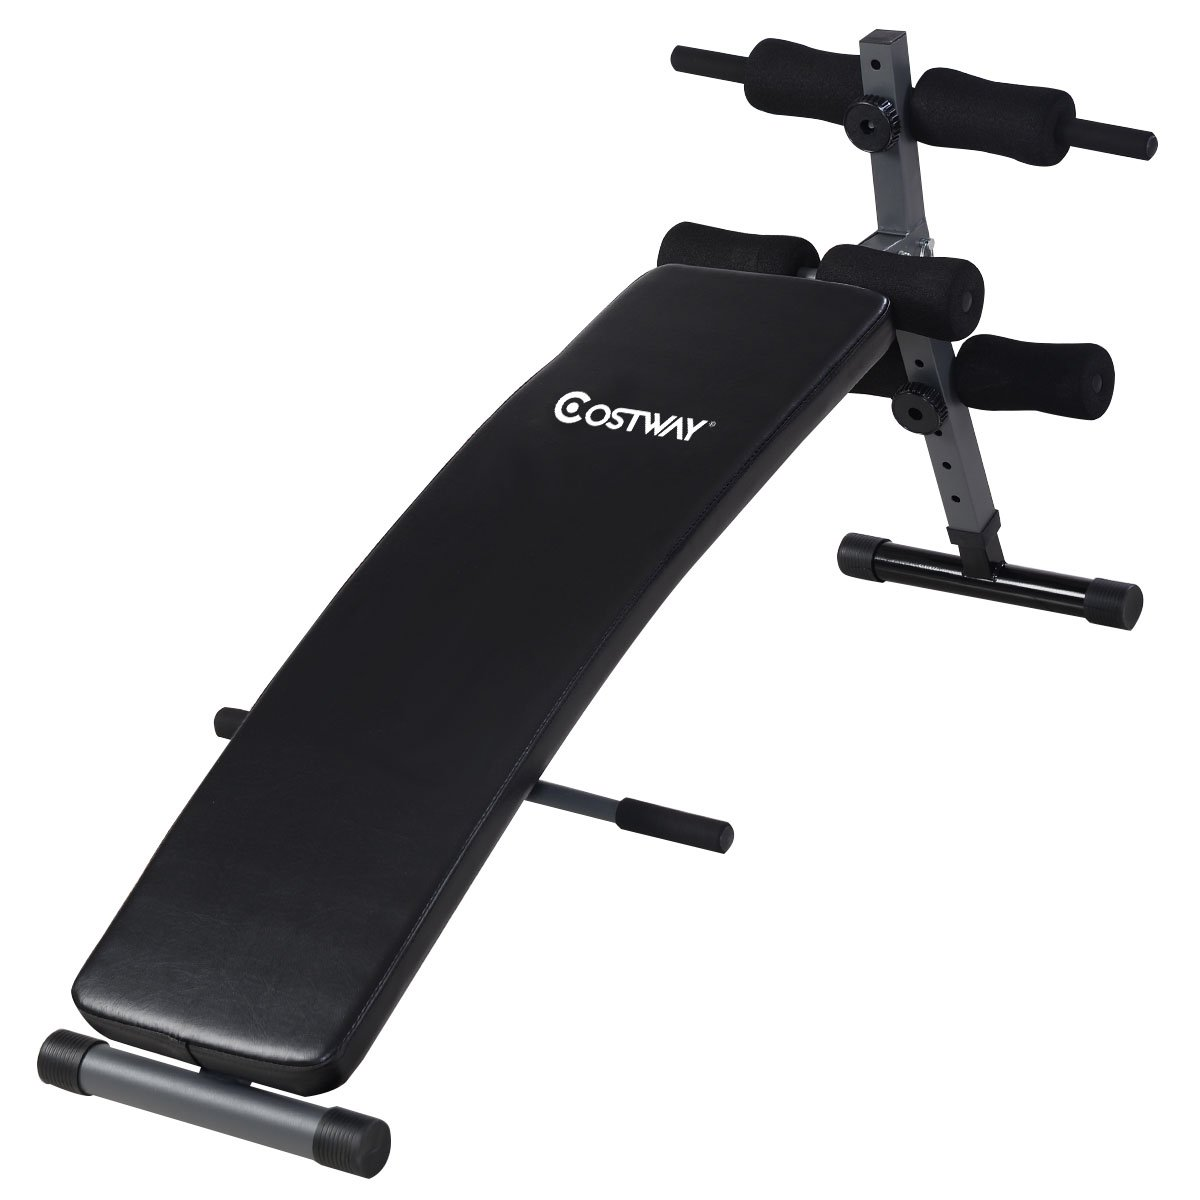 Costway Adjustable Arc-Shaped Decline Sit up Bench Crunch Board Exercise Fitness Workout by COSTWAY